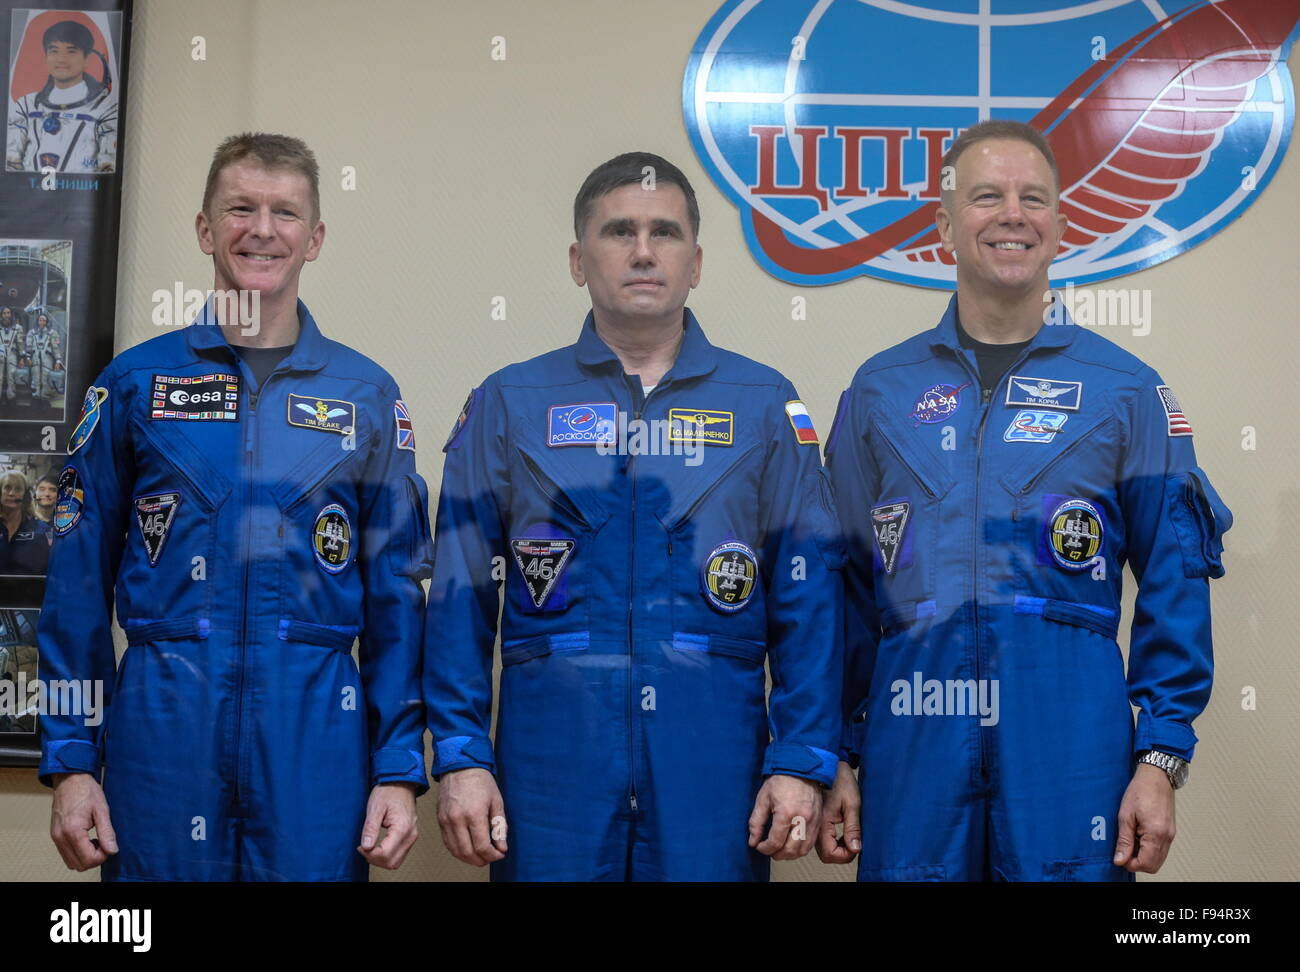 Baikonur, Kazakhstan. 14th Dec, 2015. ISS Expedition 47/46 crew members, ESA astronaut Timothy Peake of the United - Stock Image